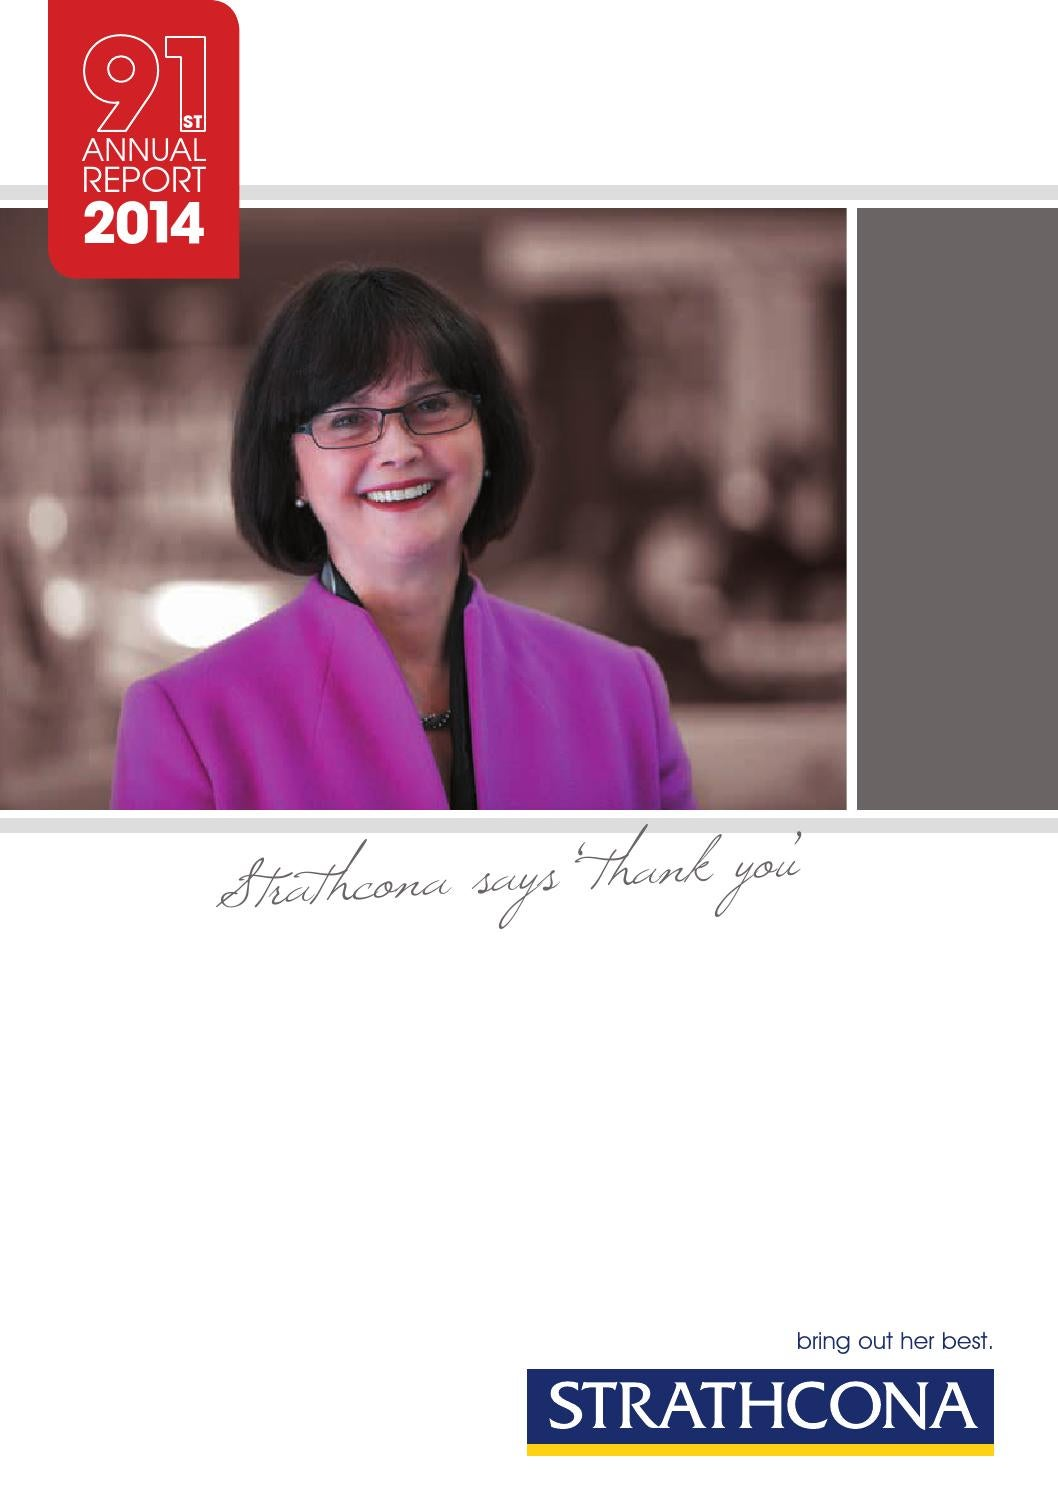 presenting fairholme highlights achievements by info design strathcona annual report 2014